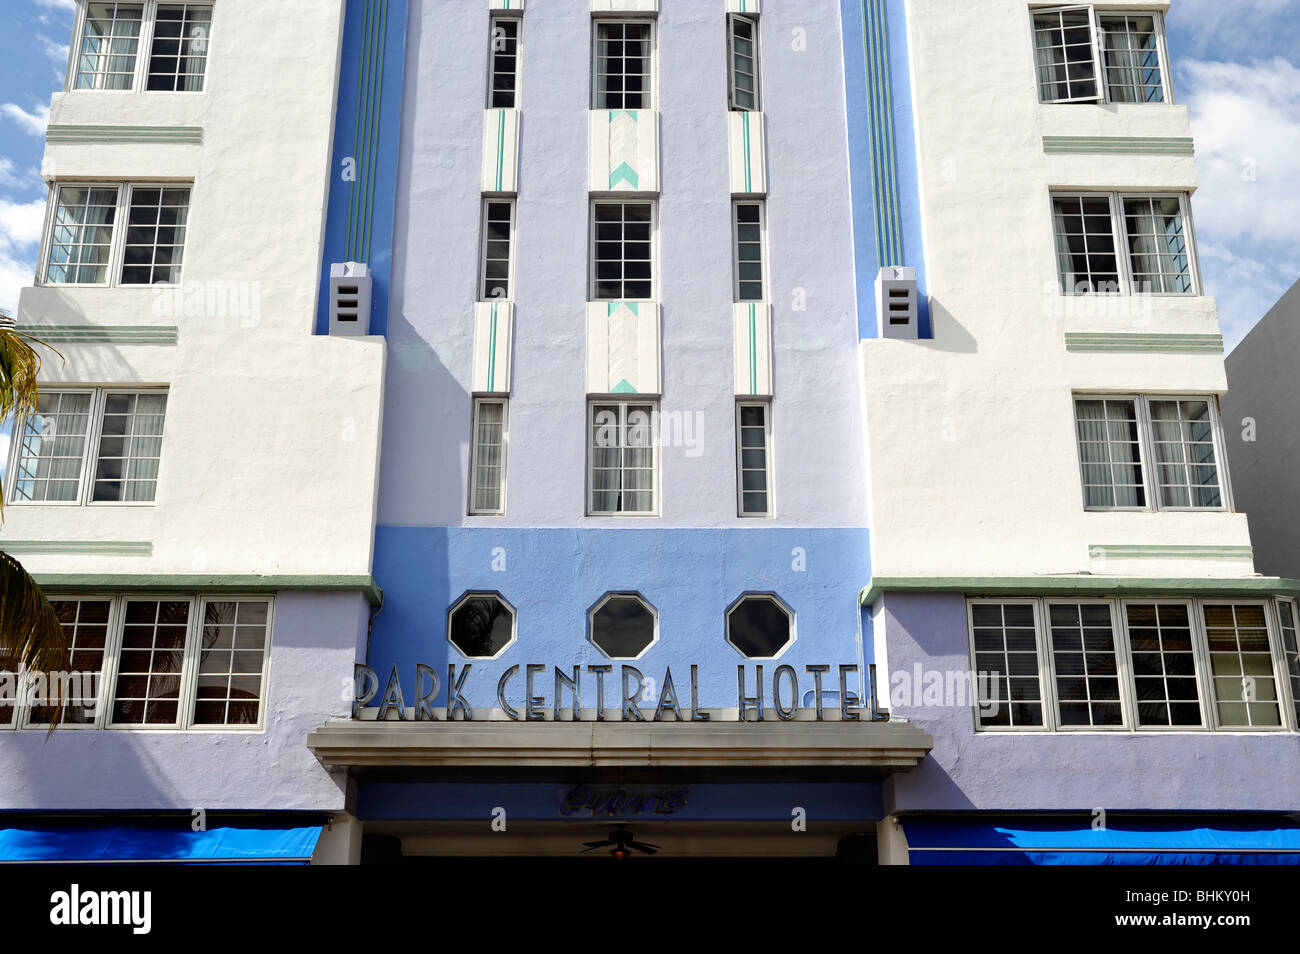 Detail of The Park Central Hotel, Art Deco District, South Beach, Miami Beach, FL, USA - Stock Image